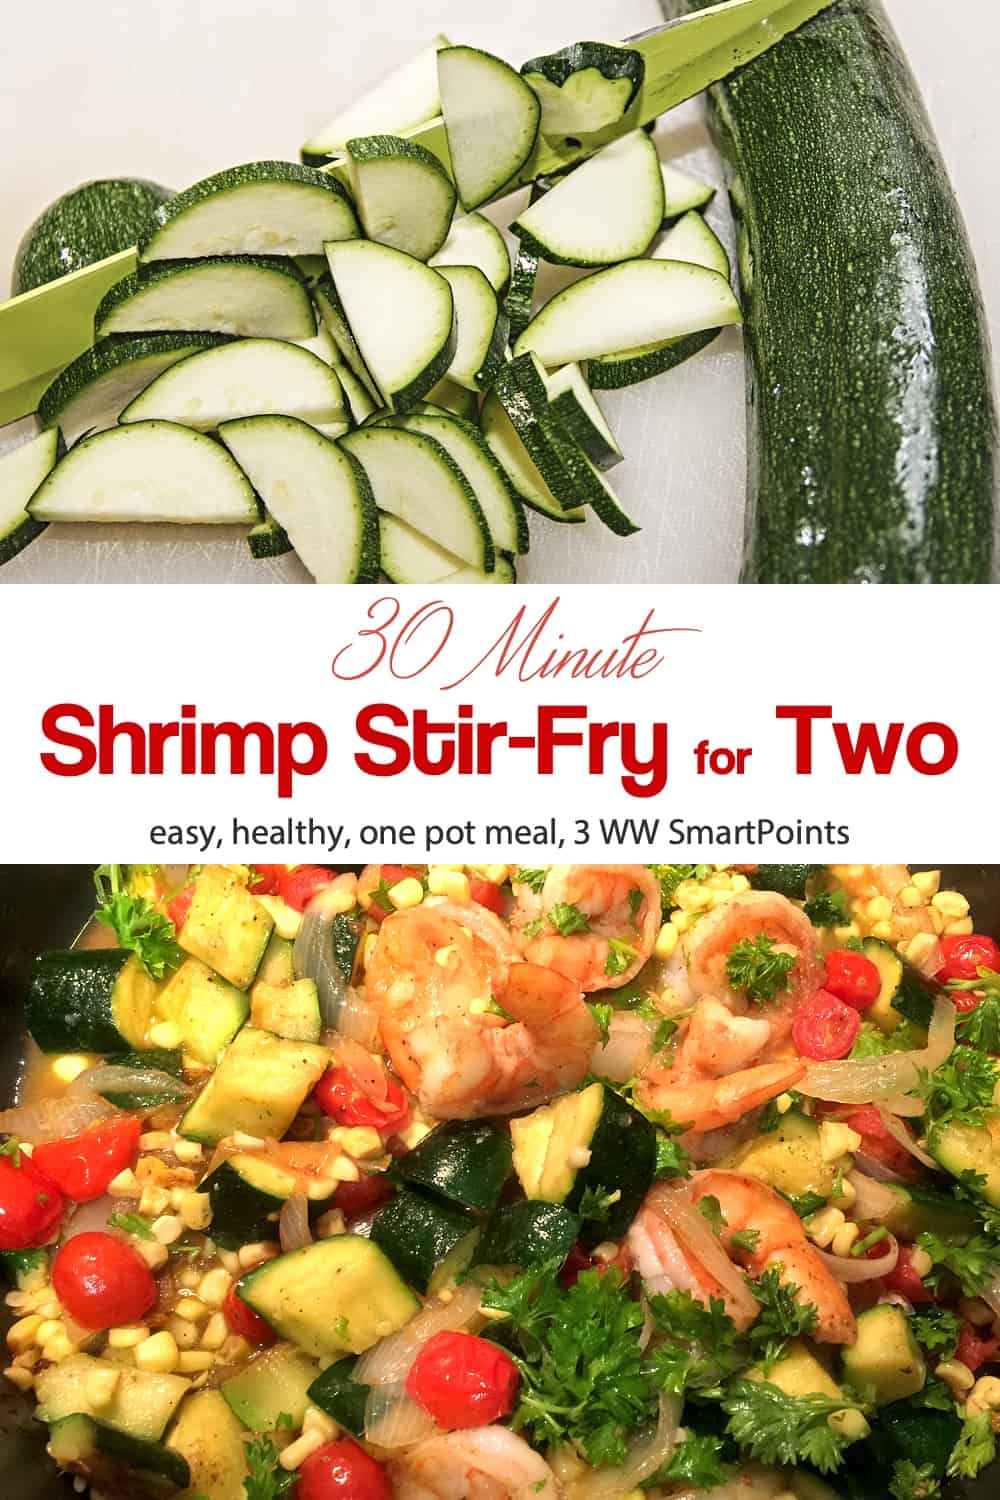 Gluten-free and easily made dairy-free, you'll love this simple, easy, Shrimp & Veggie Stir-Fry that shows Weight Watchin' and Pioneer Woman can be a winning combination! #shrimpstirfry #shrimp #stiryfry #easyhealthyrecipes